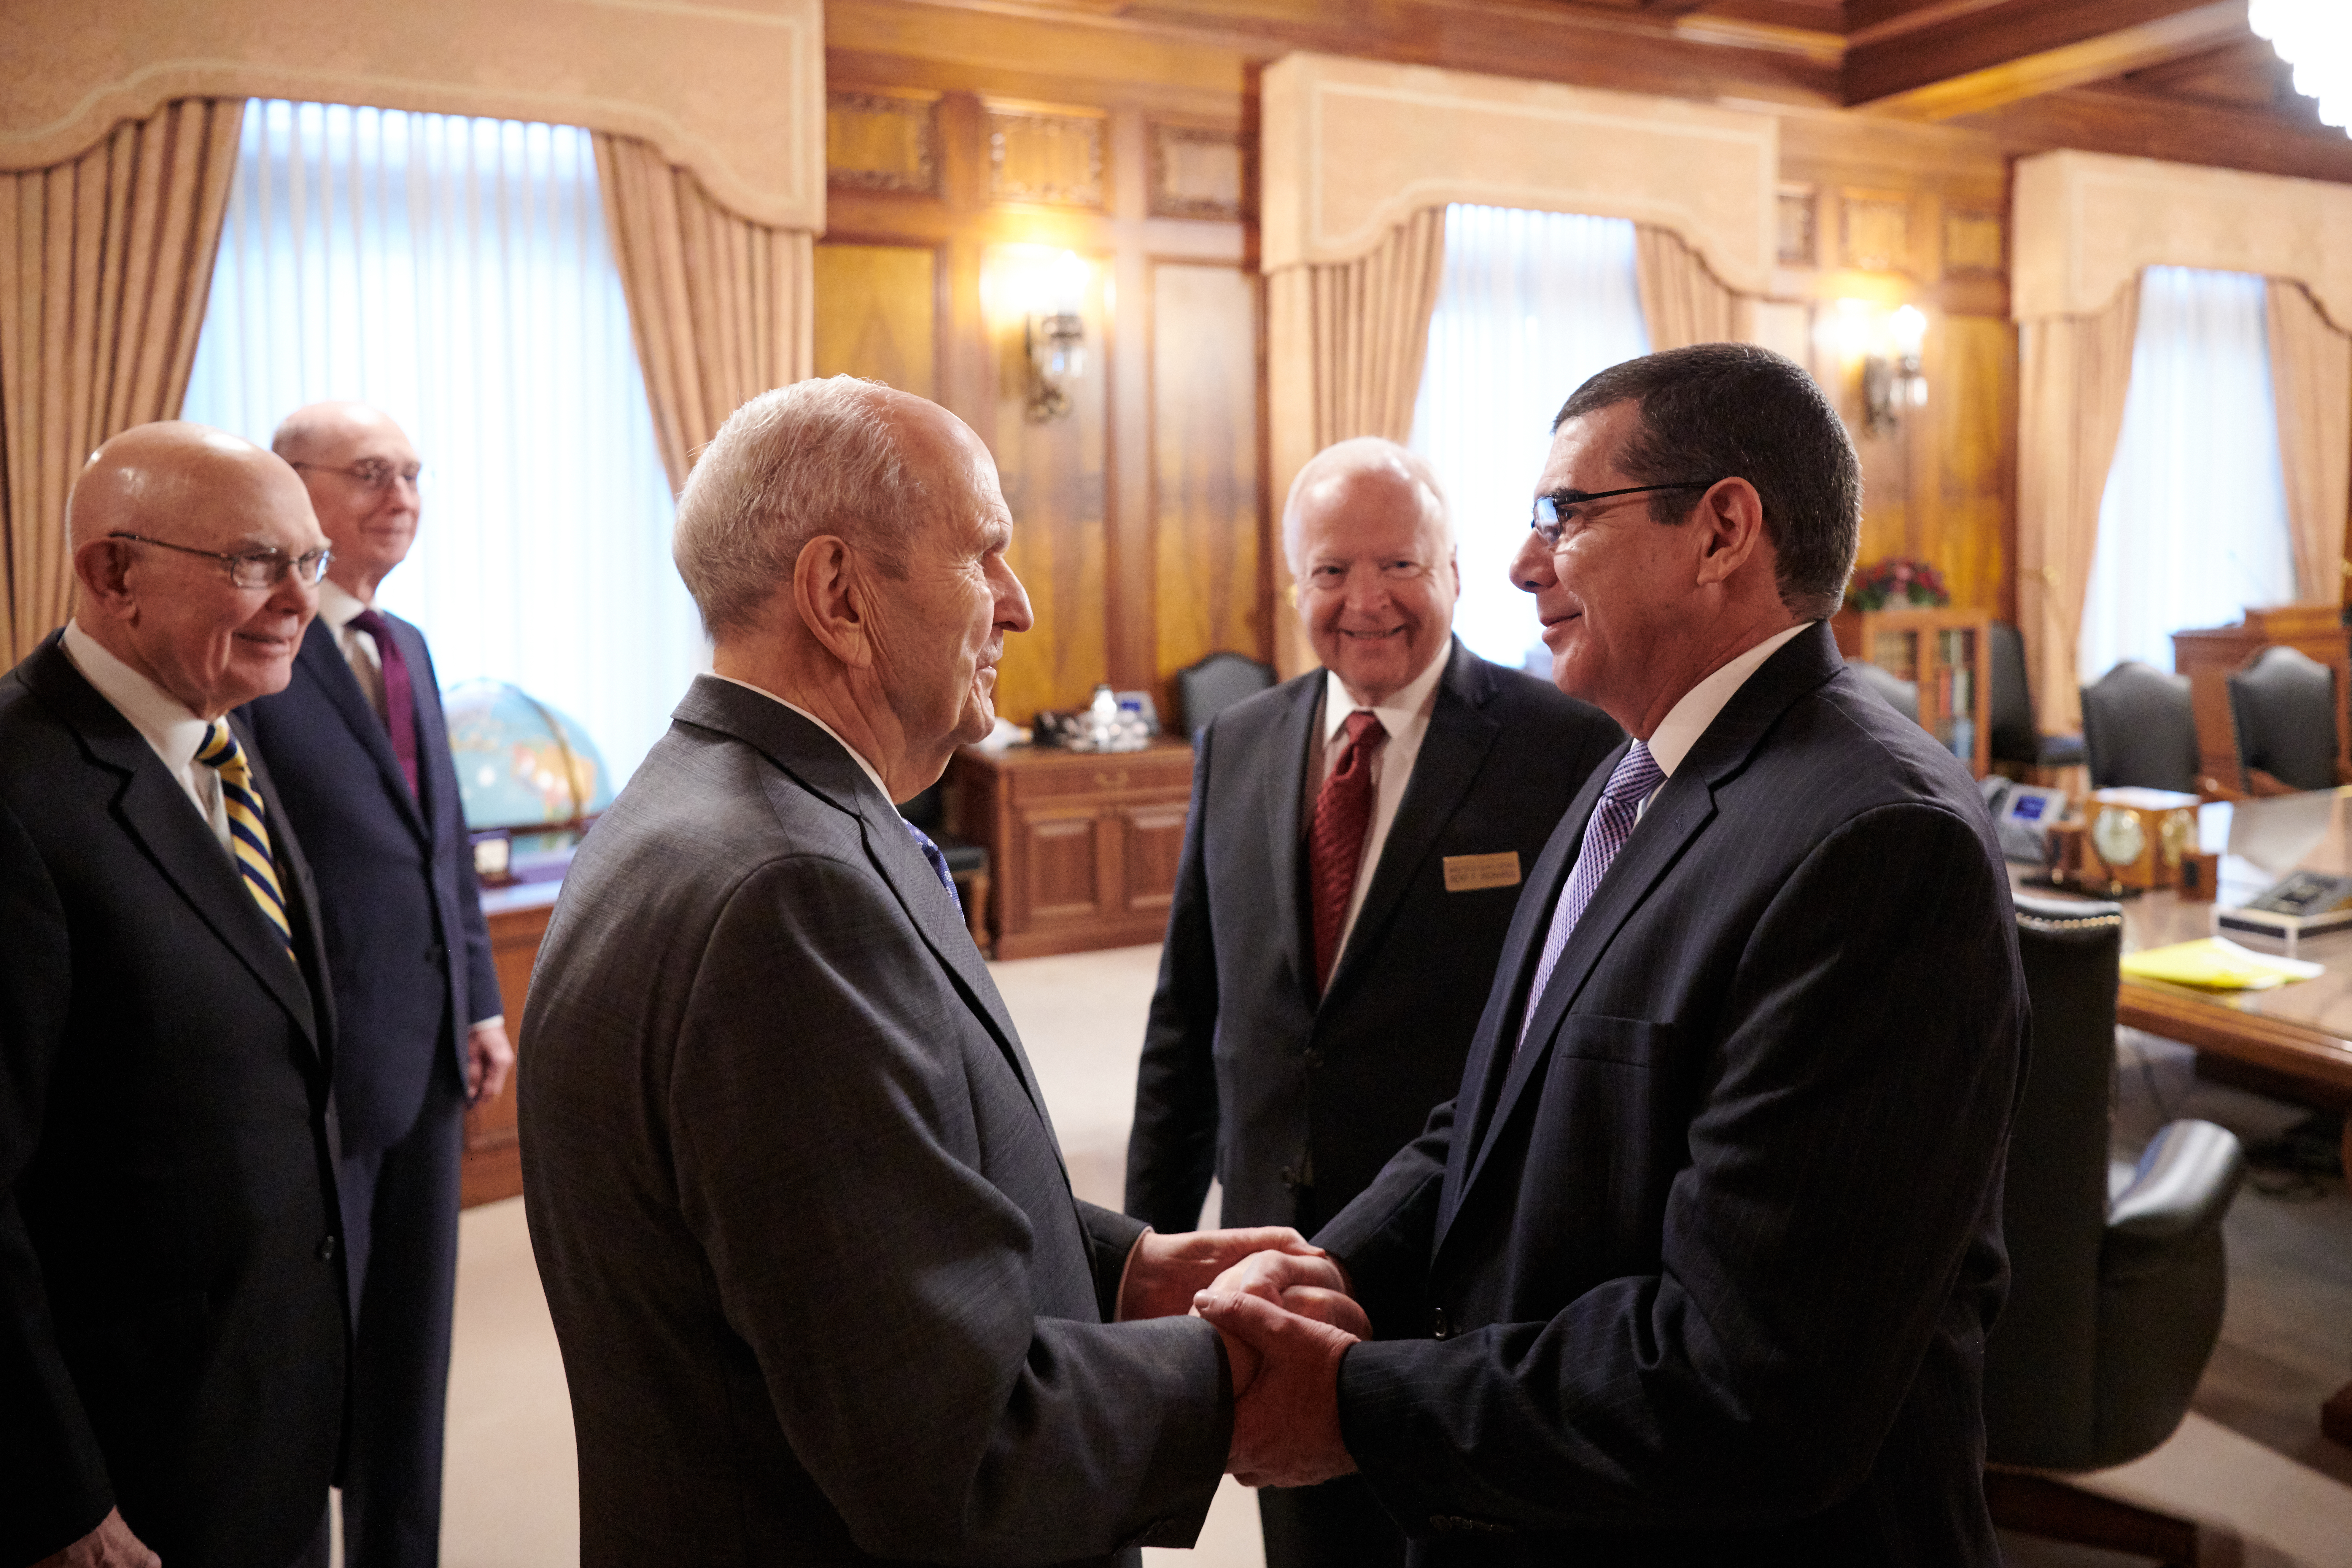 President Russell M. Nelson of The Church of Jesus Christ of Latter-day Saints greets Cuba's Ambassador to the United States, José R. Cabañas, on Oct. 23, 2019.